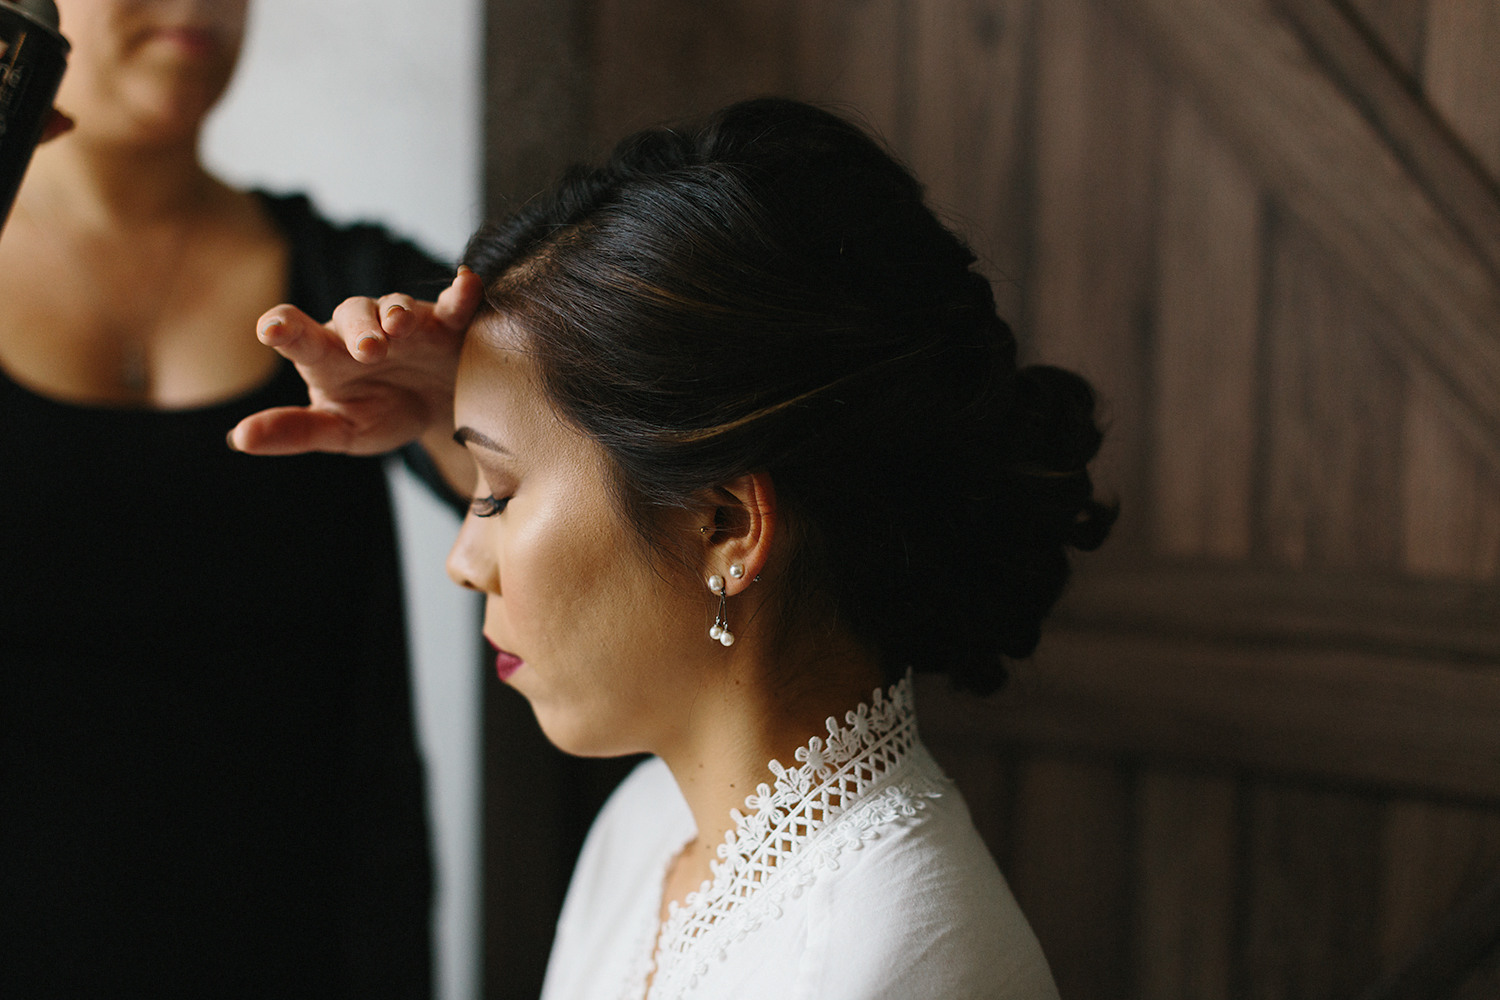 bride-getting-makeup-done-in-white-bridal-robe-london-ontario-wedding-inspiration.jpg